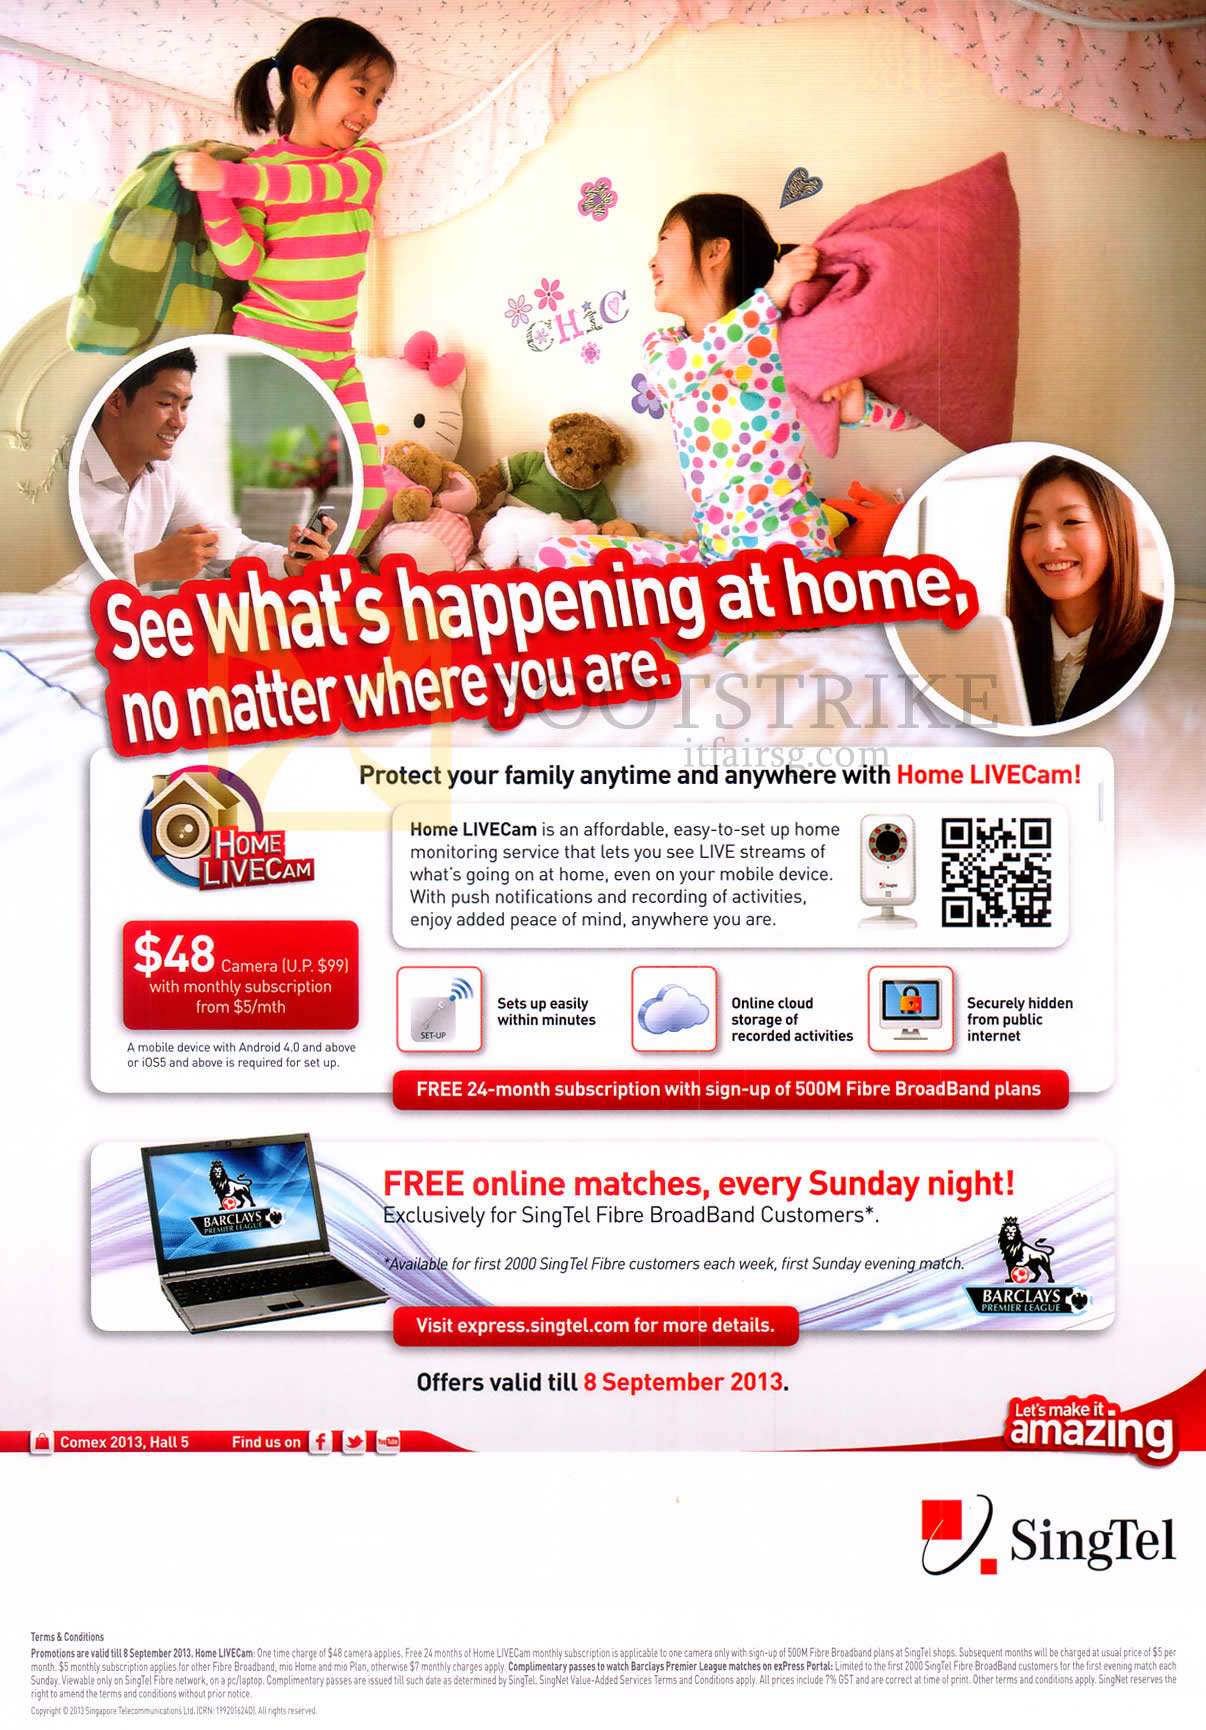 COMEX 2013 price list image brochure of Singtel Home LiveCam Home Monitoring Service